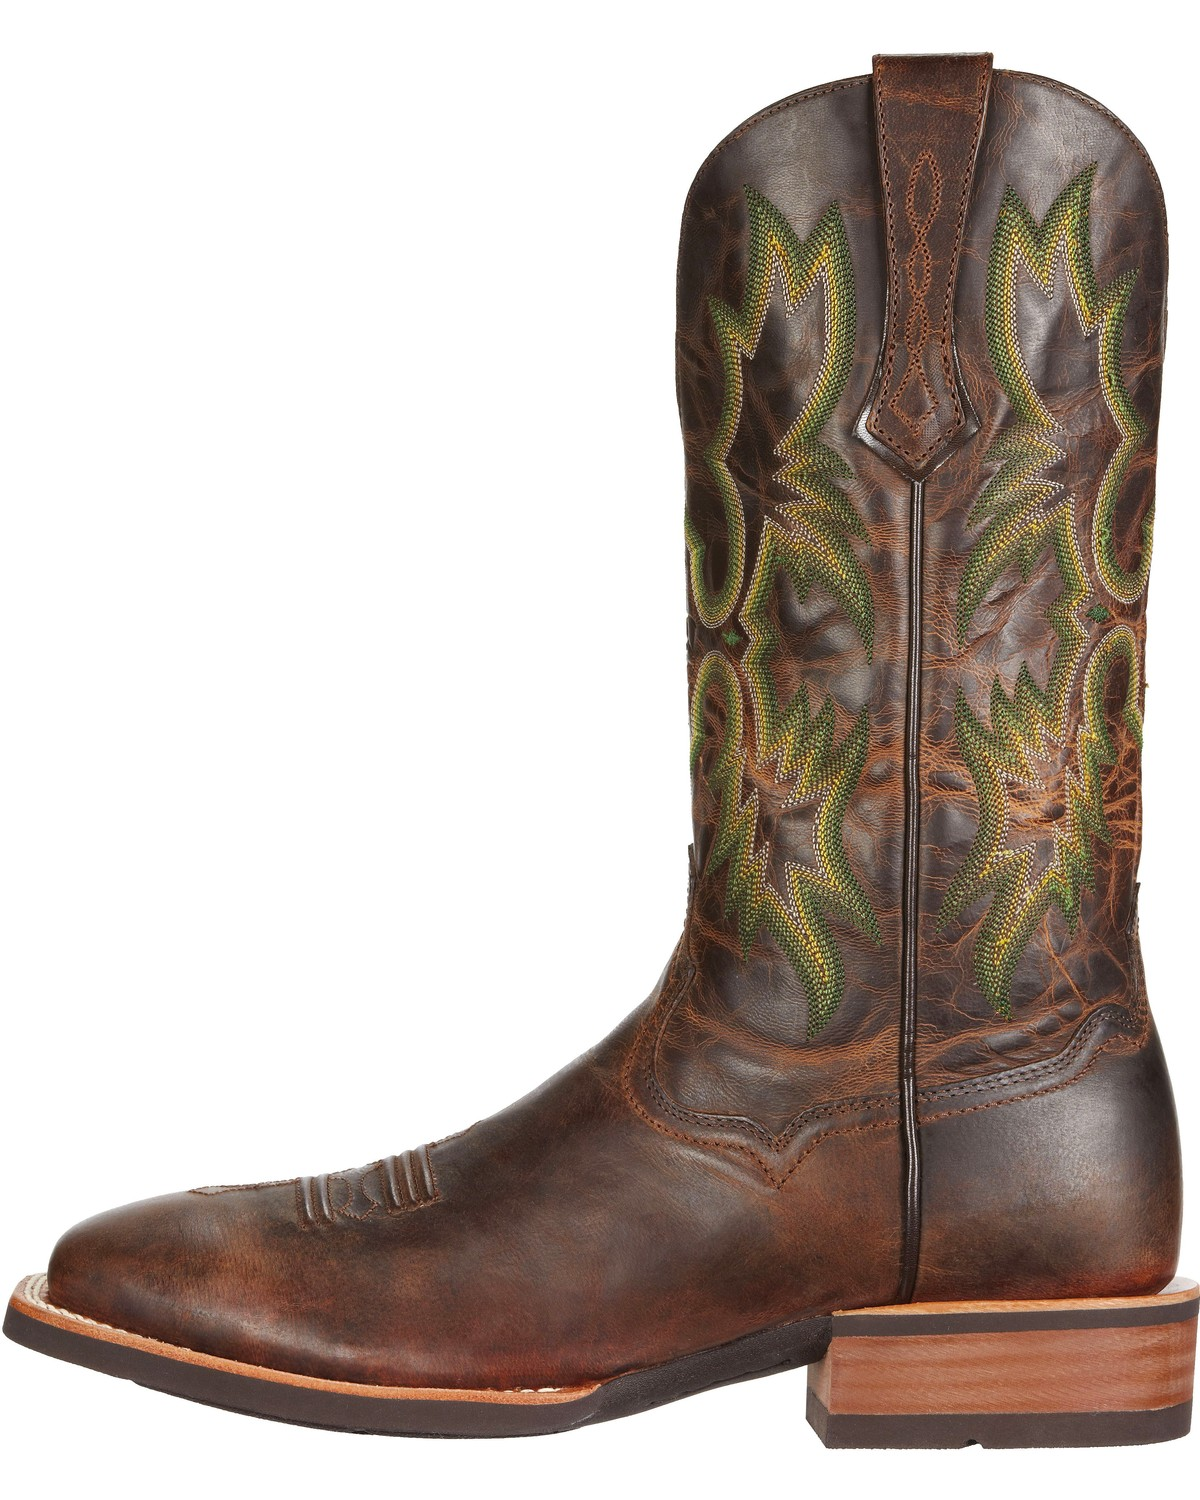 Ariat Tombstone Cowboy Boots - Square Toe | Sheplers